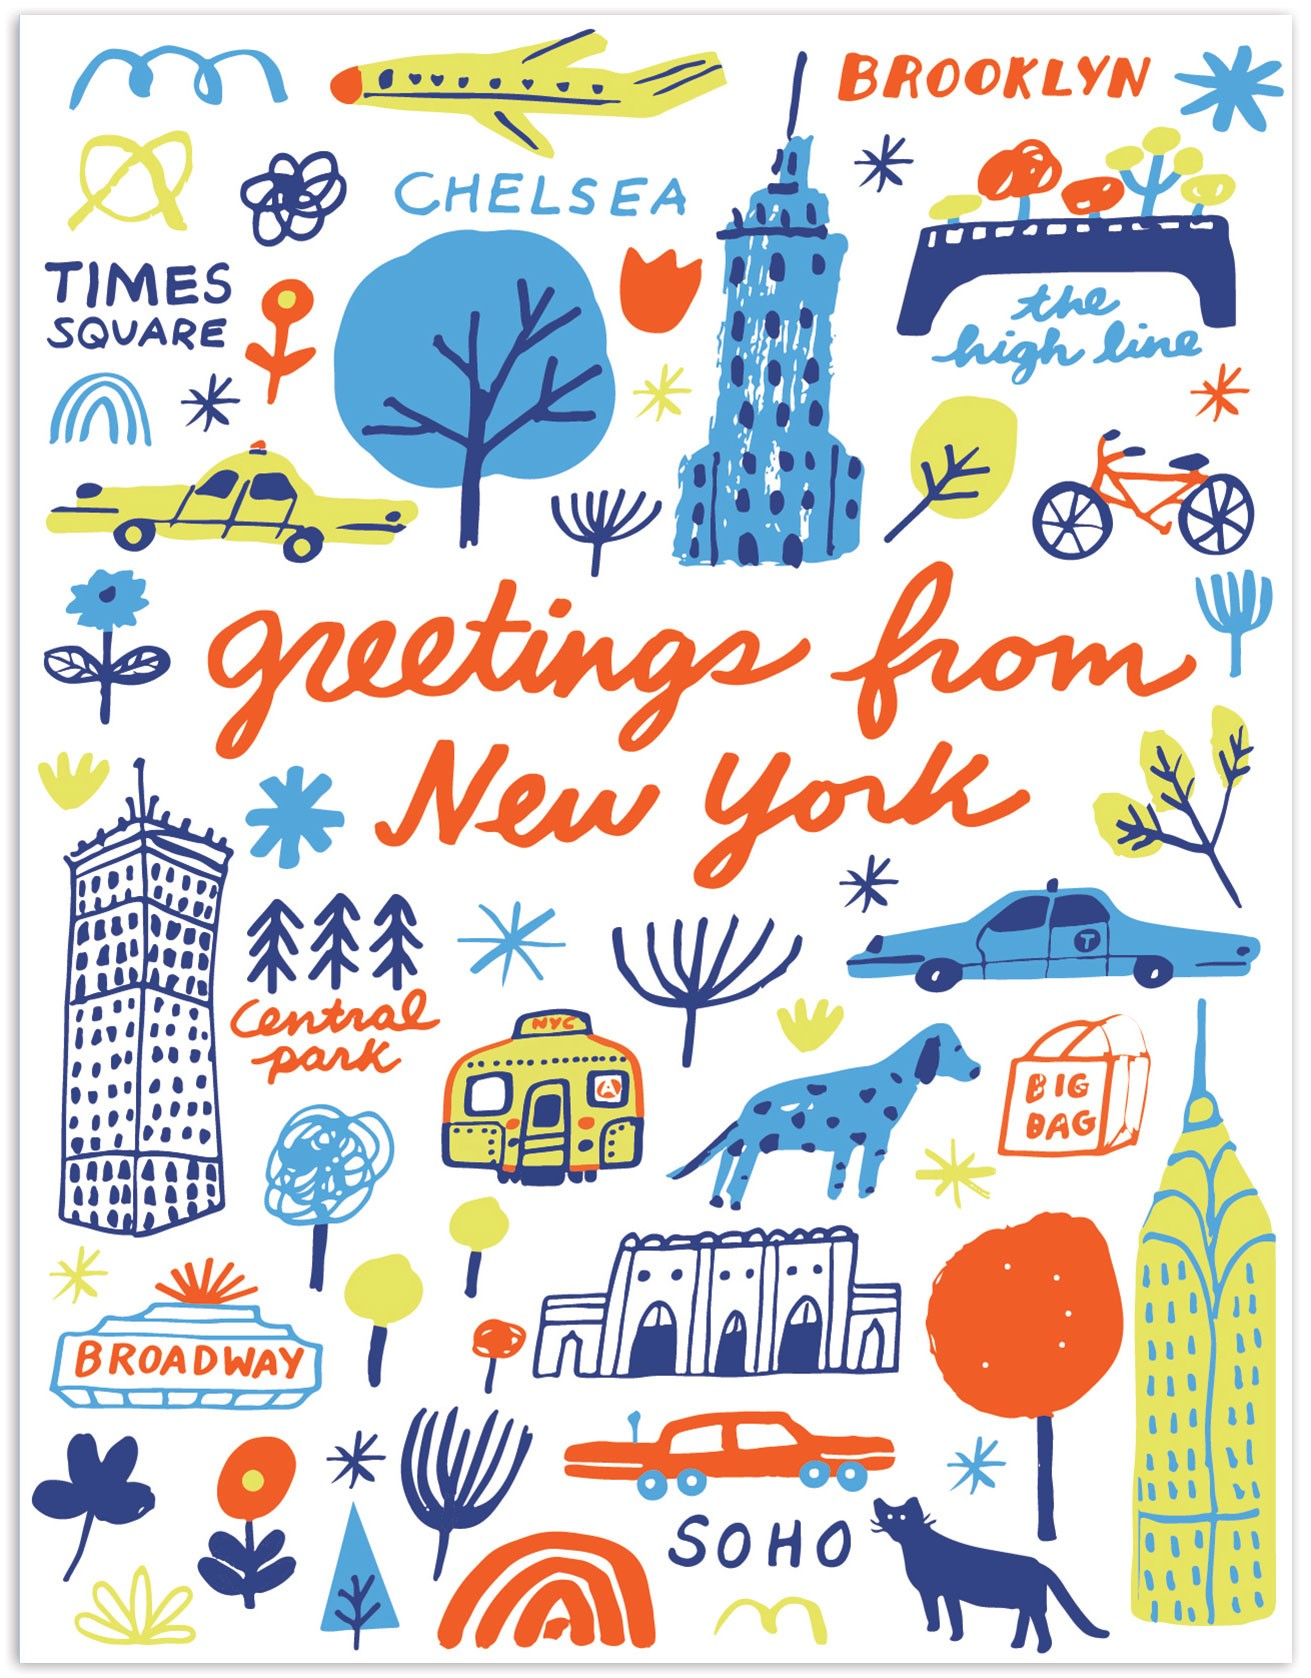 The found greetings from new york landmarks greetings from new york landmarks kristyandbryce Images